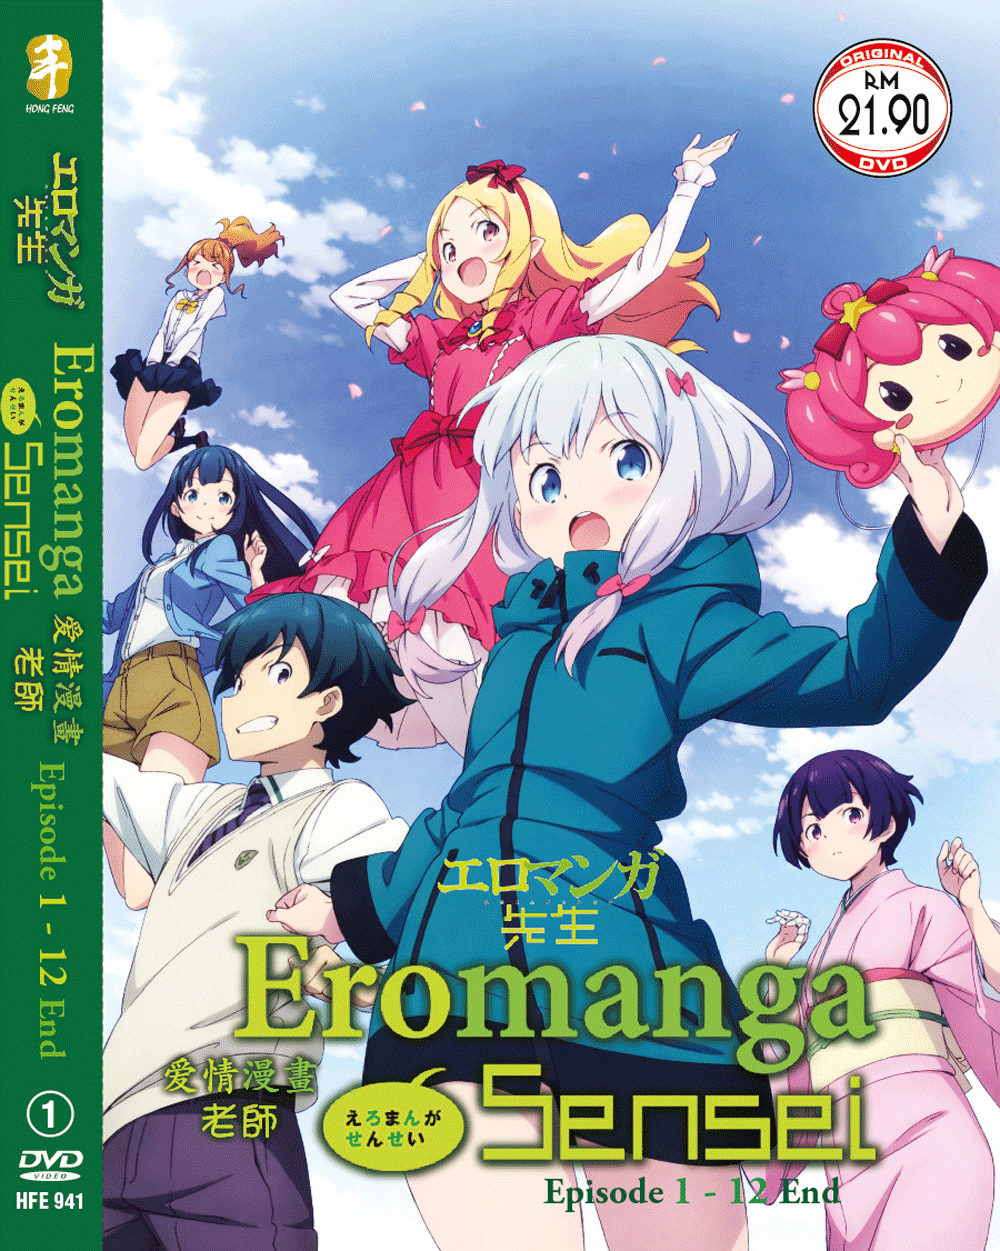 Eromanga Sensei (1-12End) English subtitle